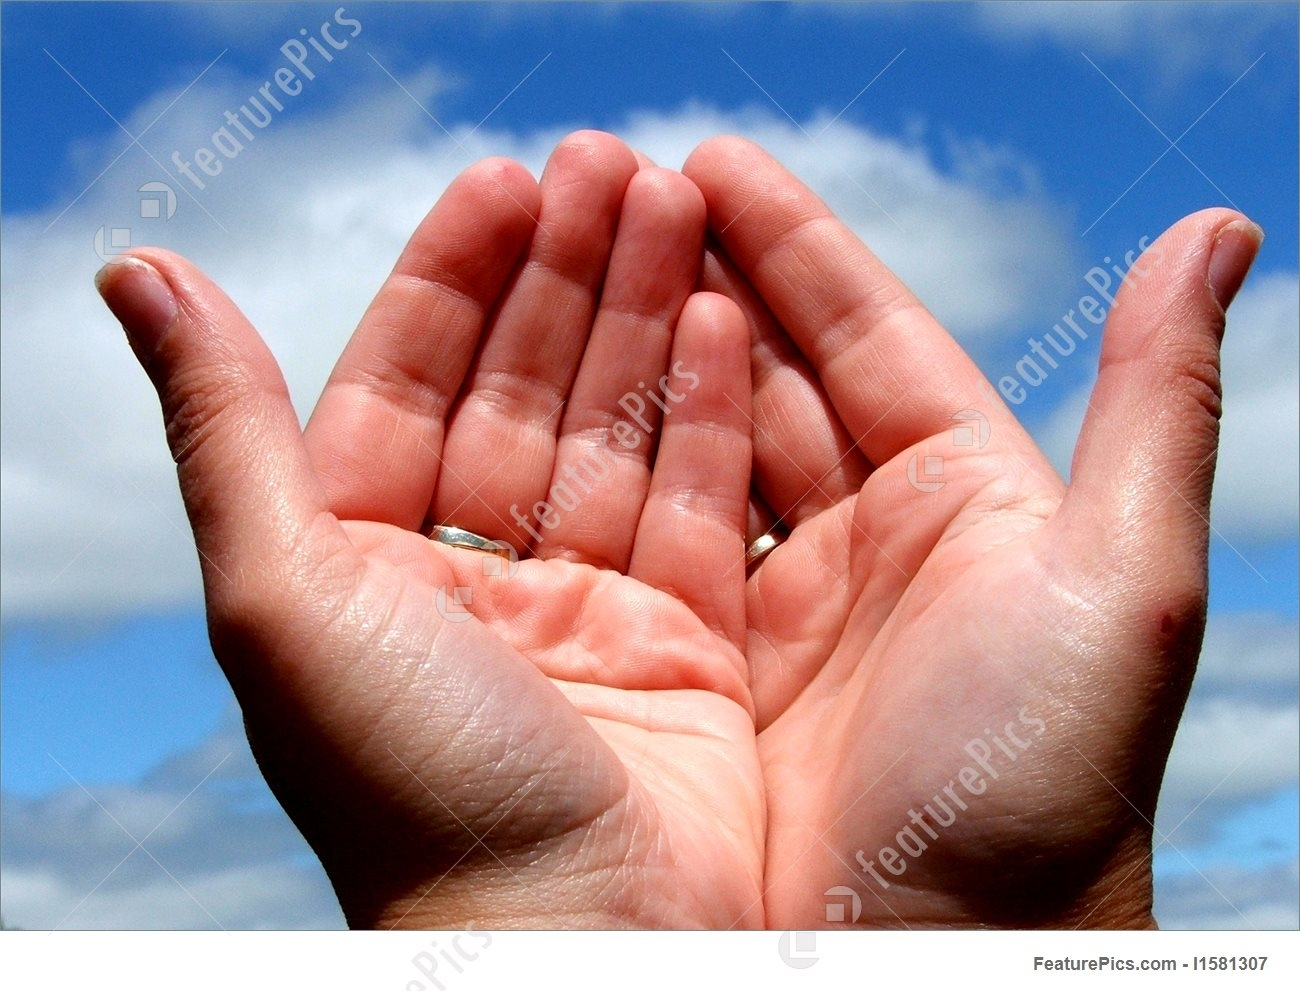 picture of praying hands